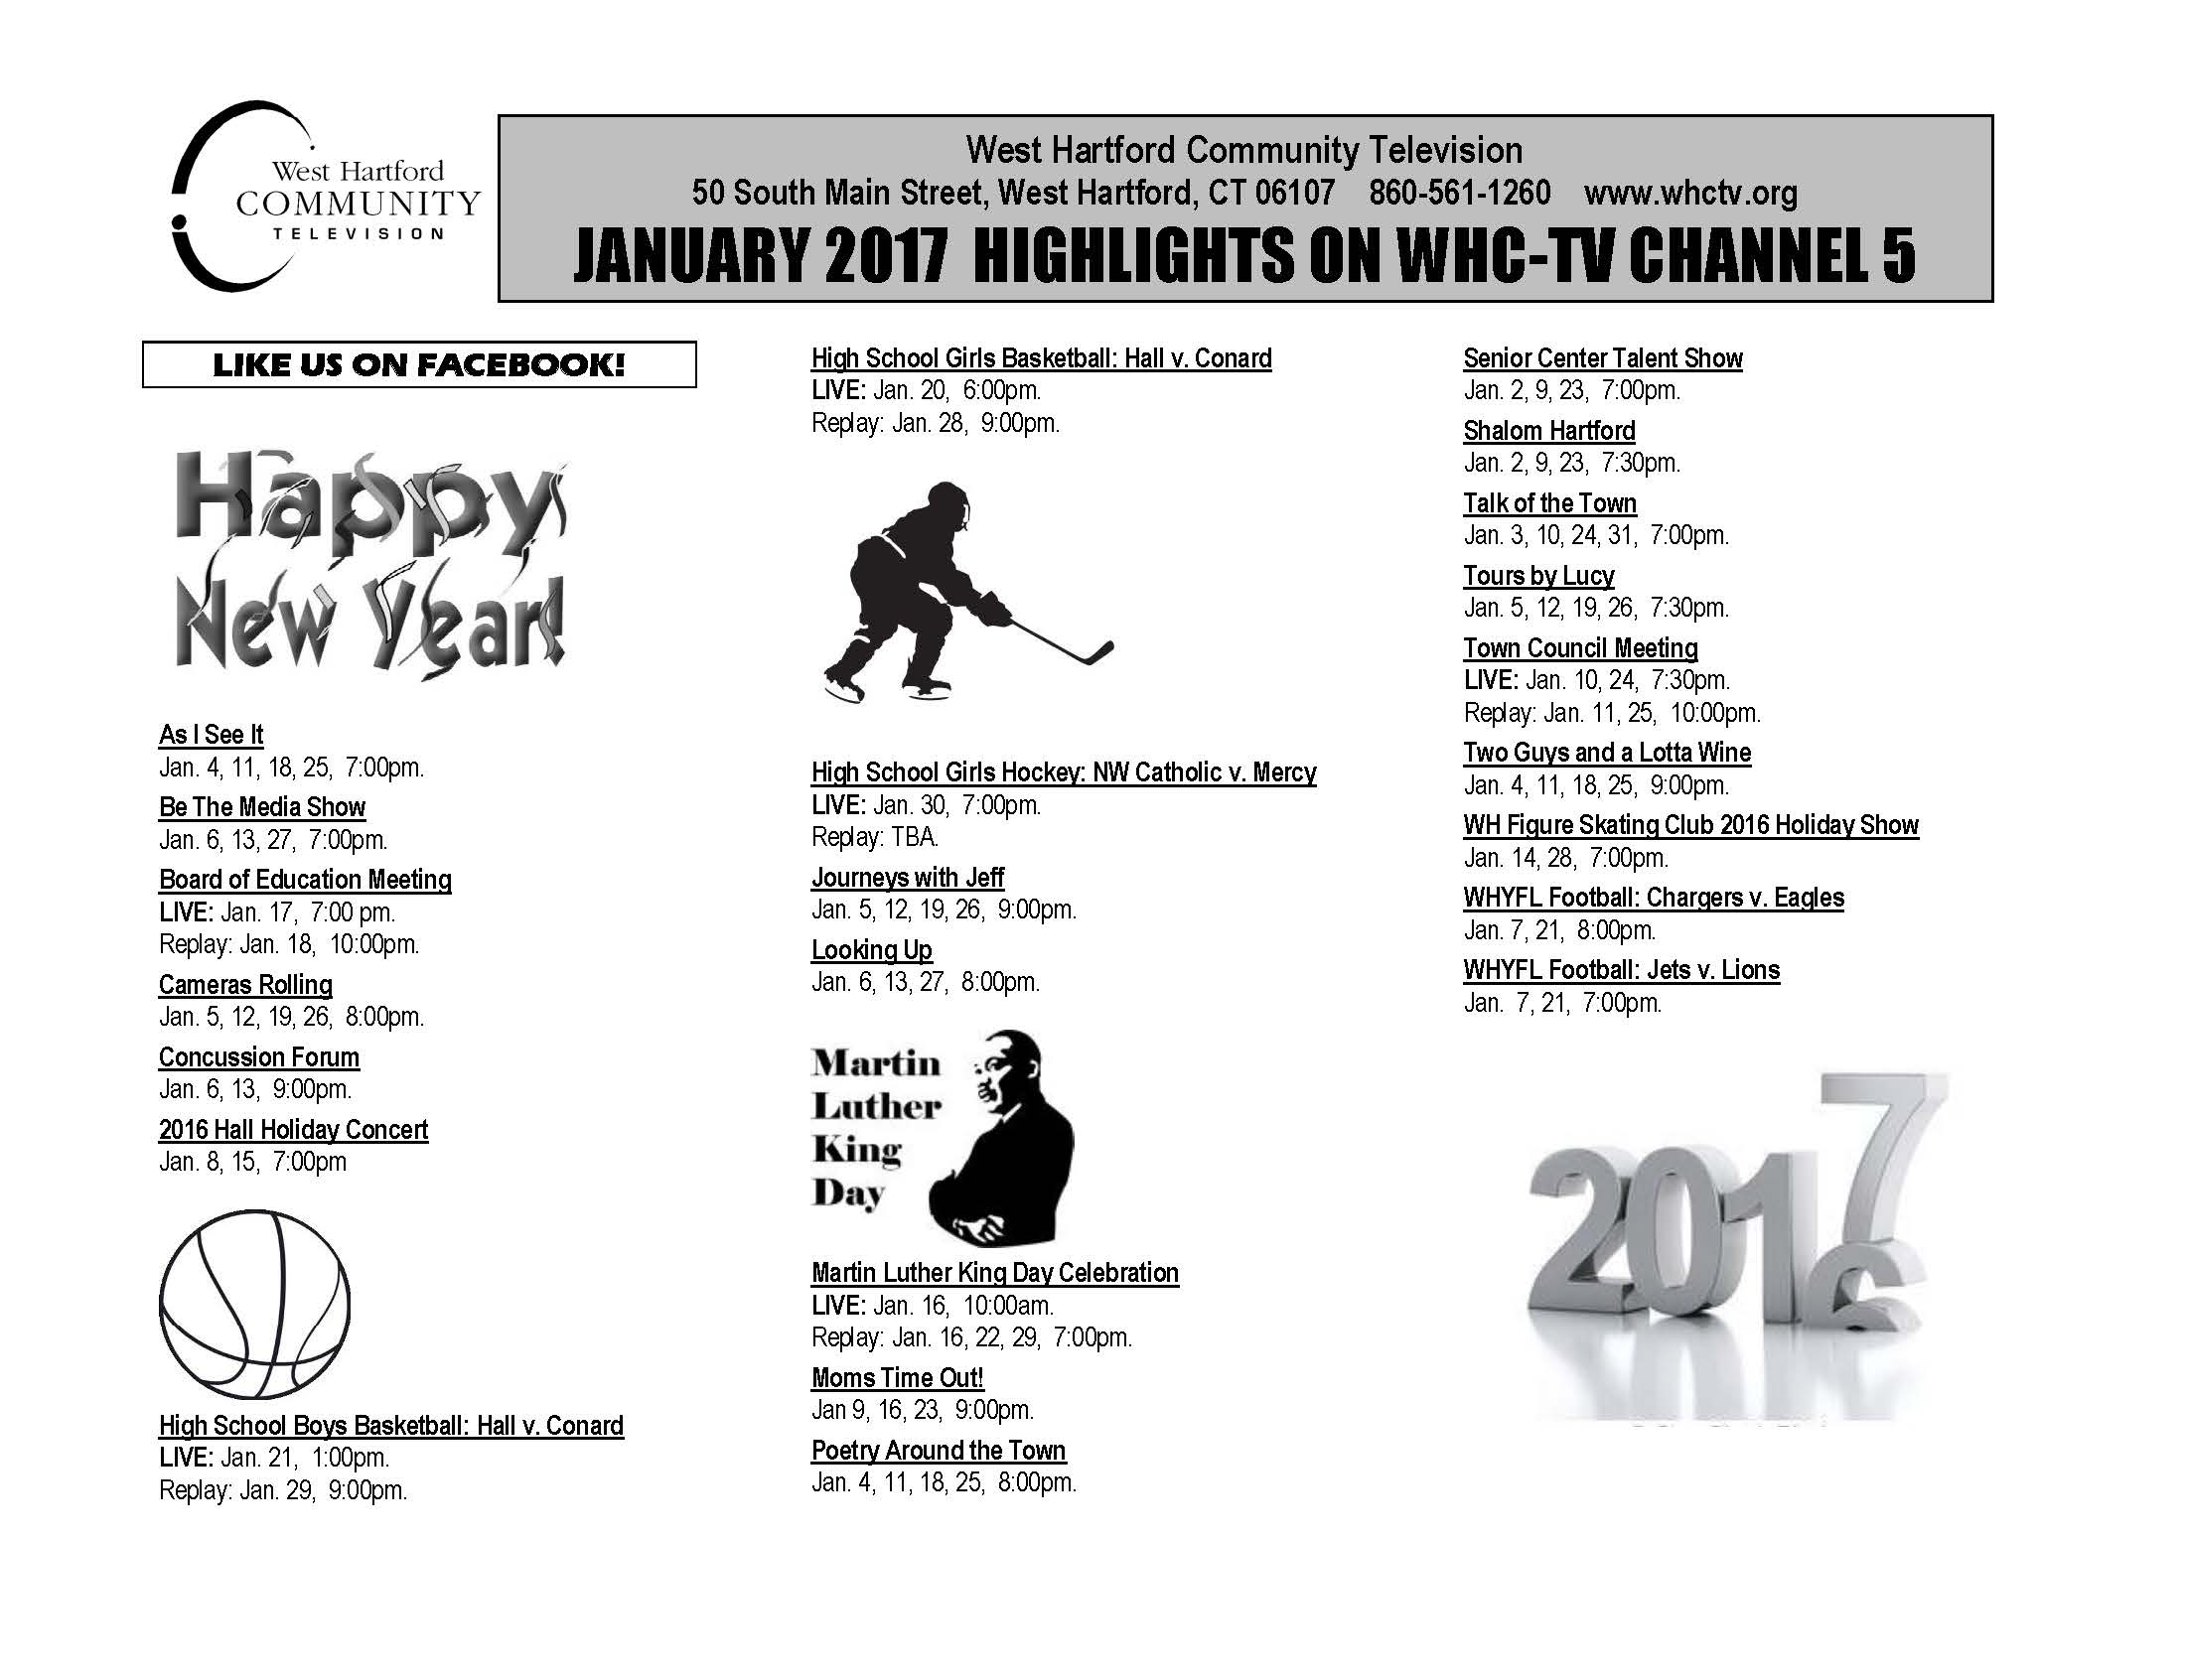 January 2017 Schedule